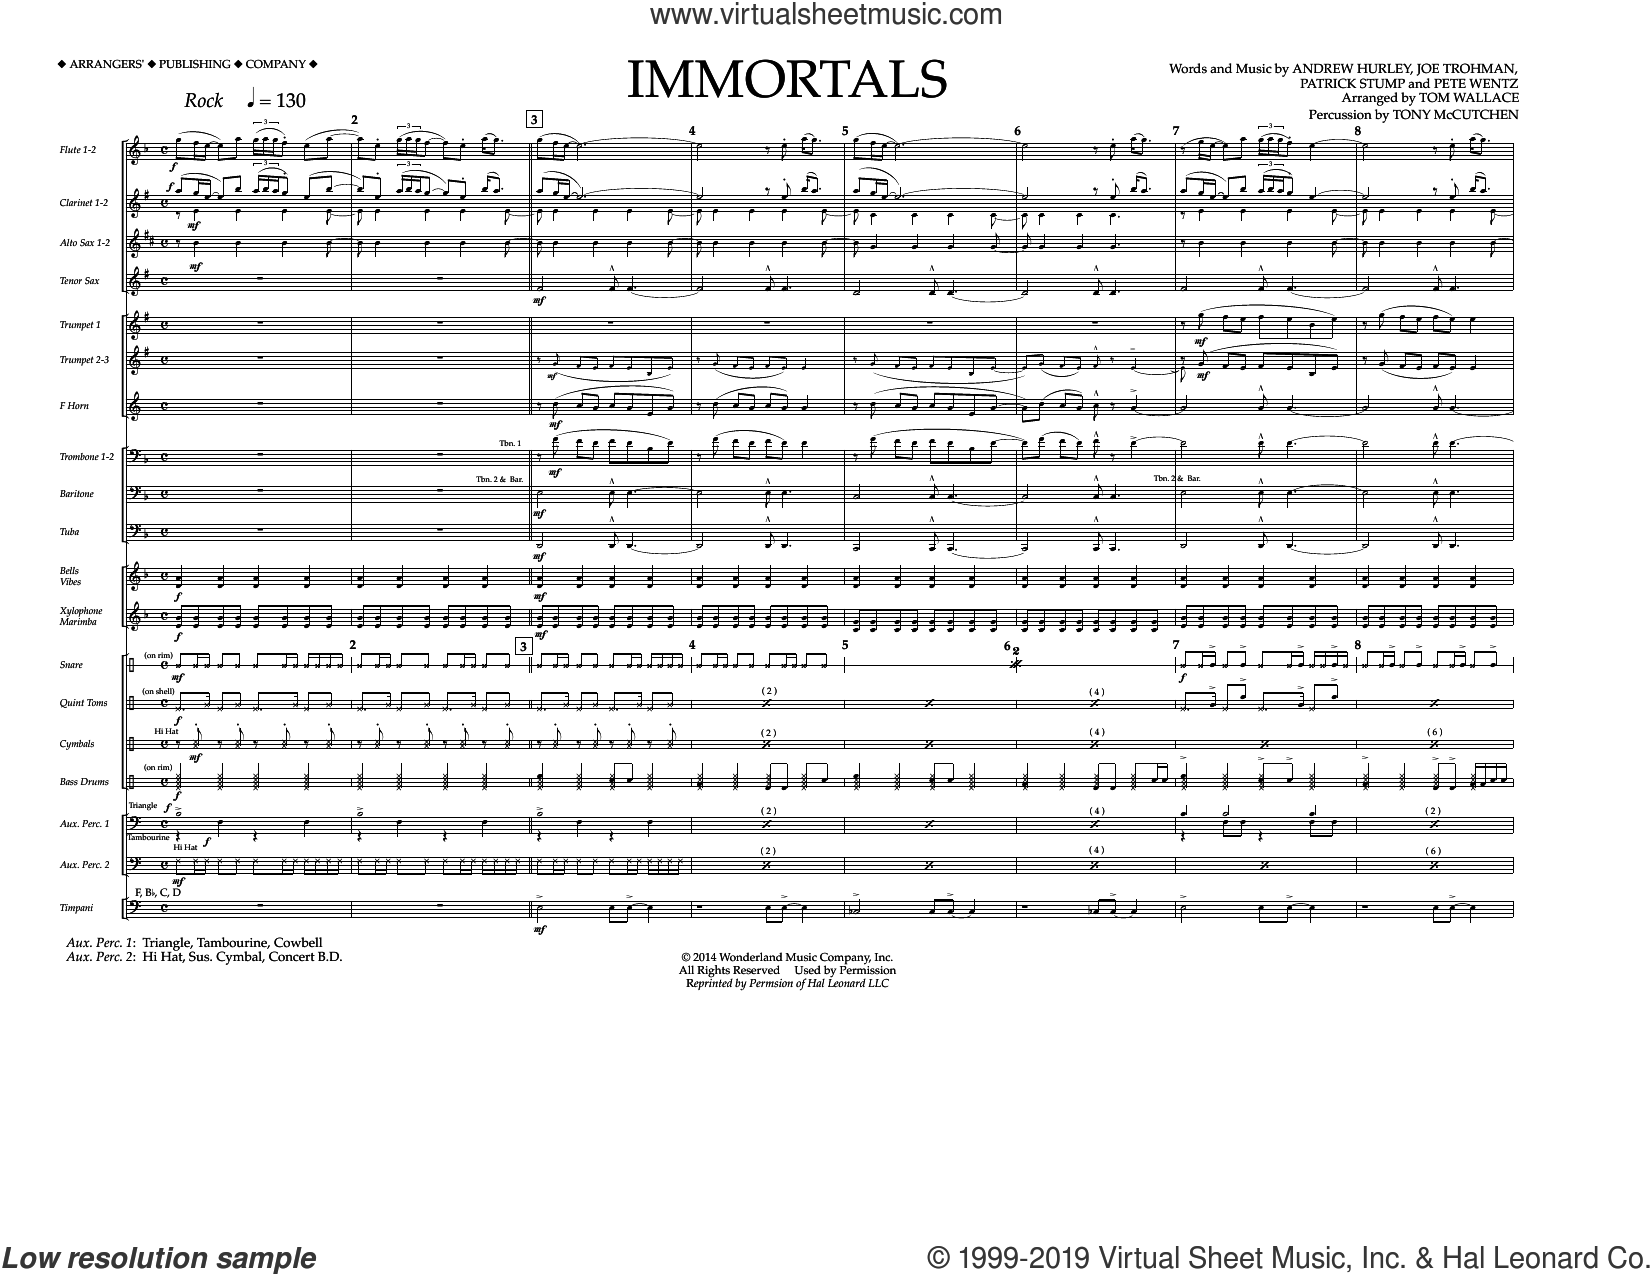 Immortals (from Big Hero 6) (arr. Tom Wallace) (COMPLETE) sheet music for marching band by Fall Out Boy, Andrew Hurley, Joe Trohman, Patrick Stump, Pete Wentz and Tom Wallace, intermediate skill level